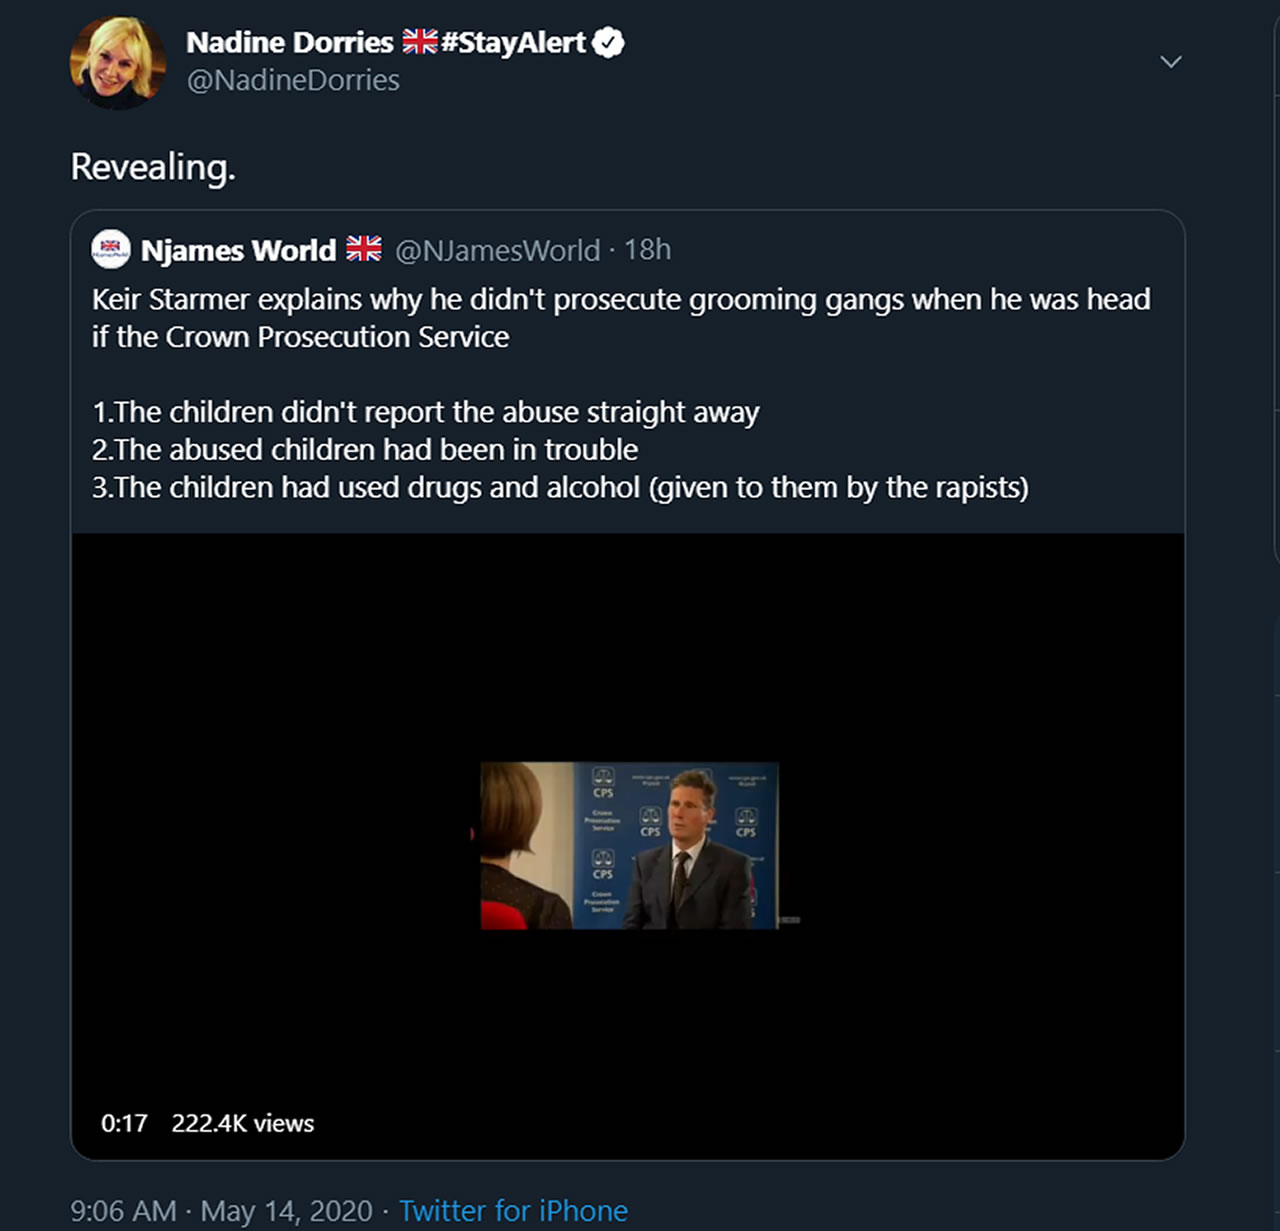 Nadine Dorries MP attempts to defame Keir Starmer on Twitter with an edited video